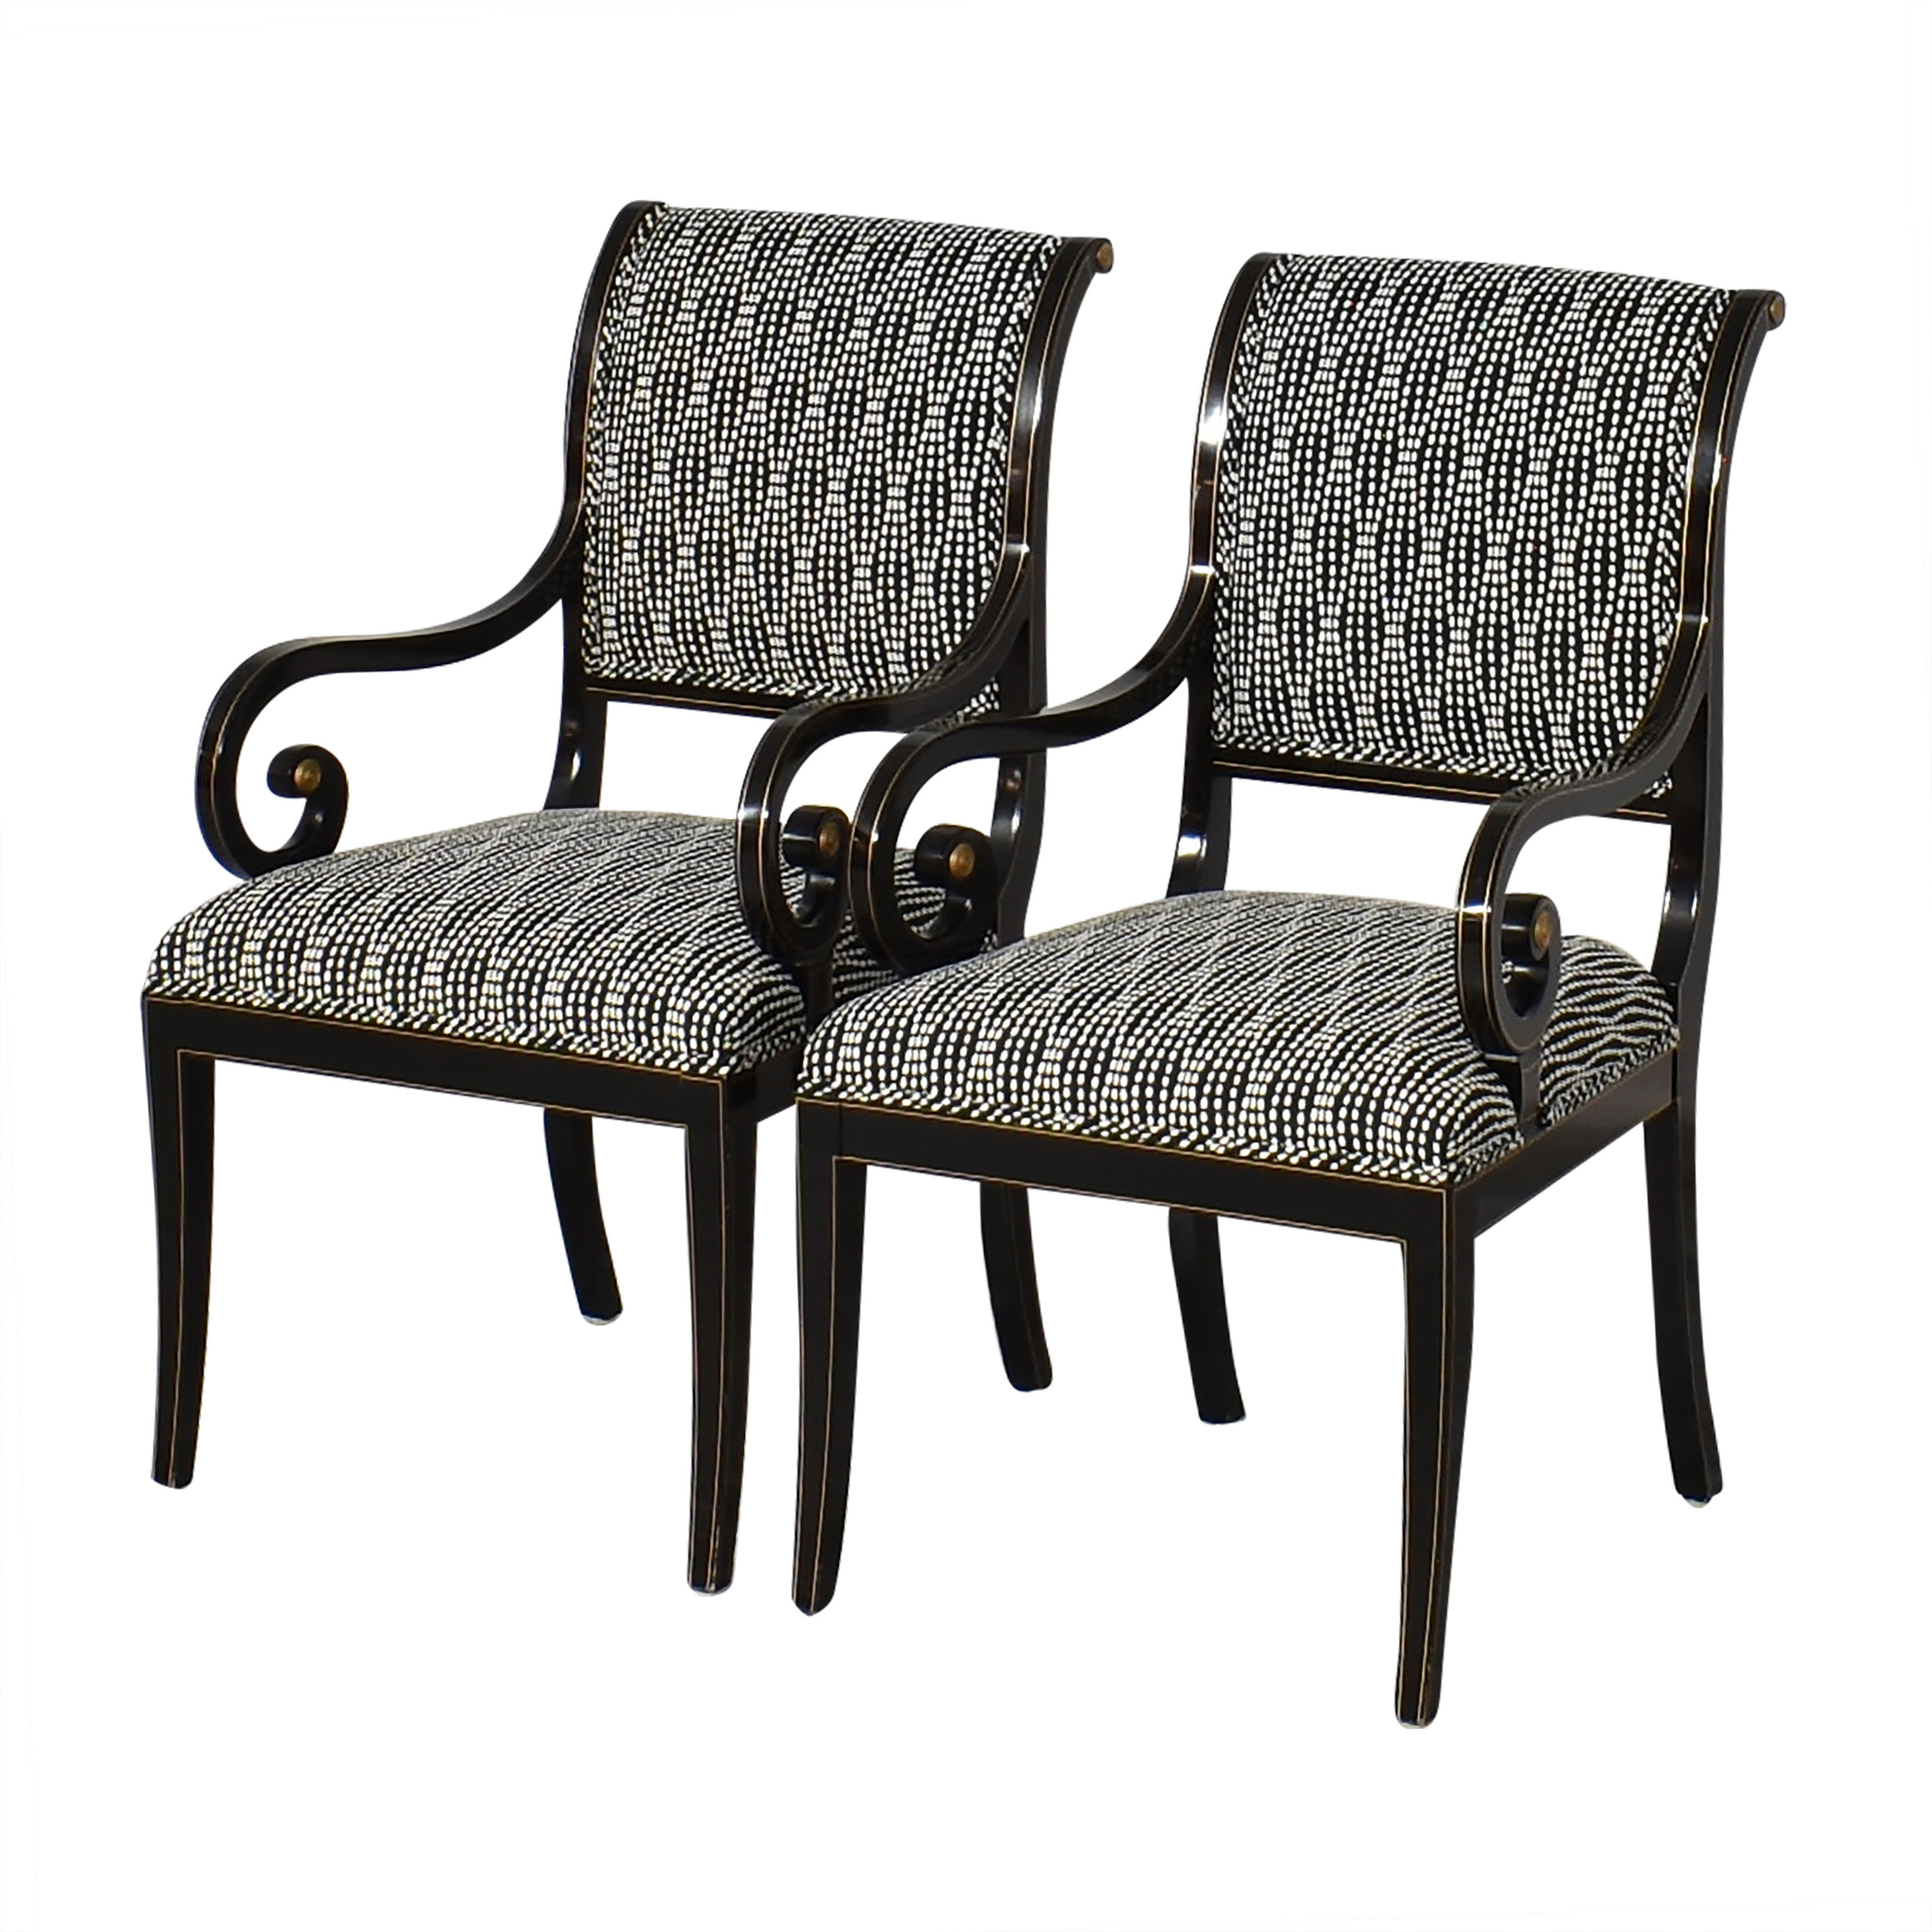 Kindel Kindel Upholstered Dining Arm Chairs Black and White